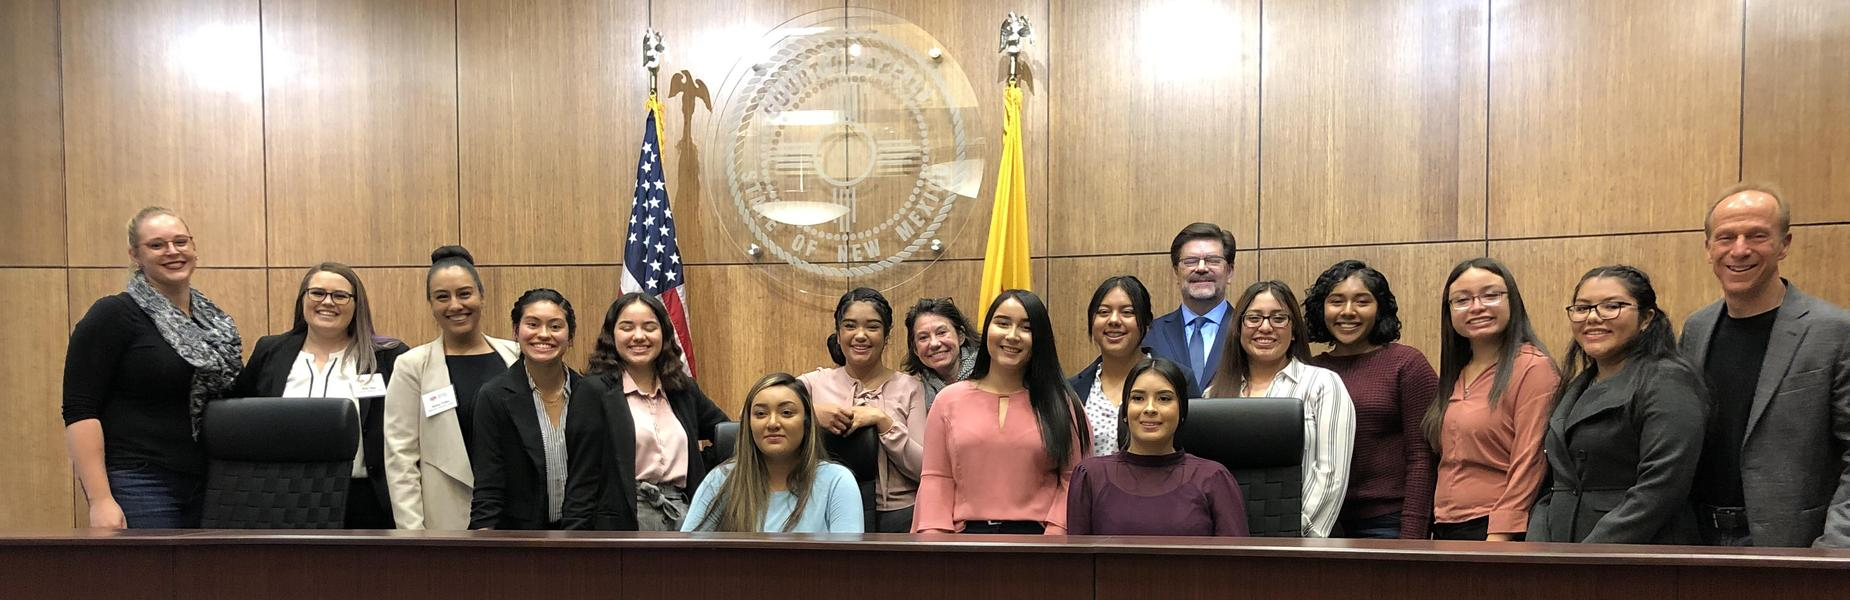 SVA Students at the NM Court of Appeals